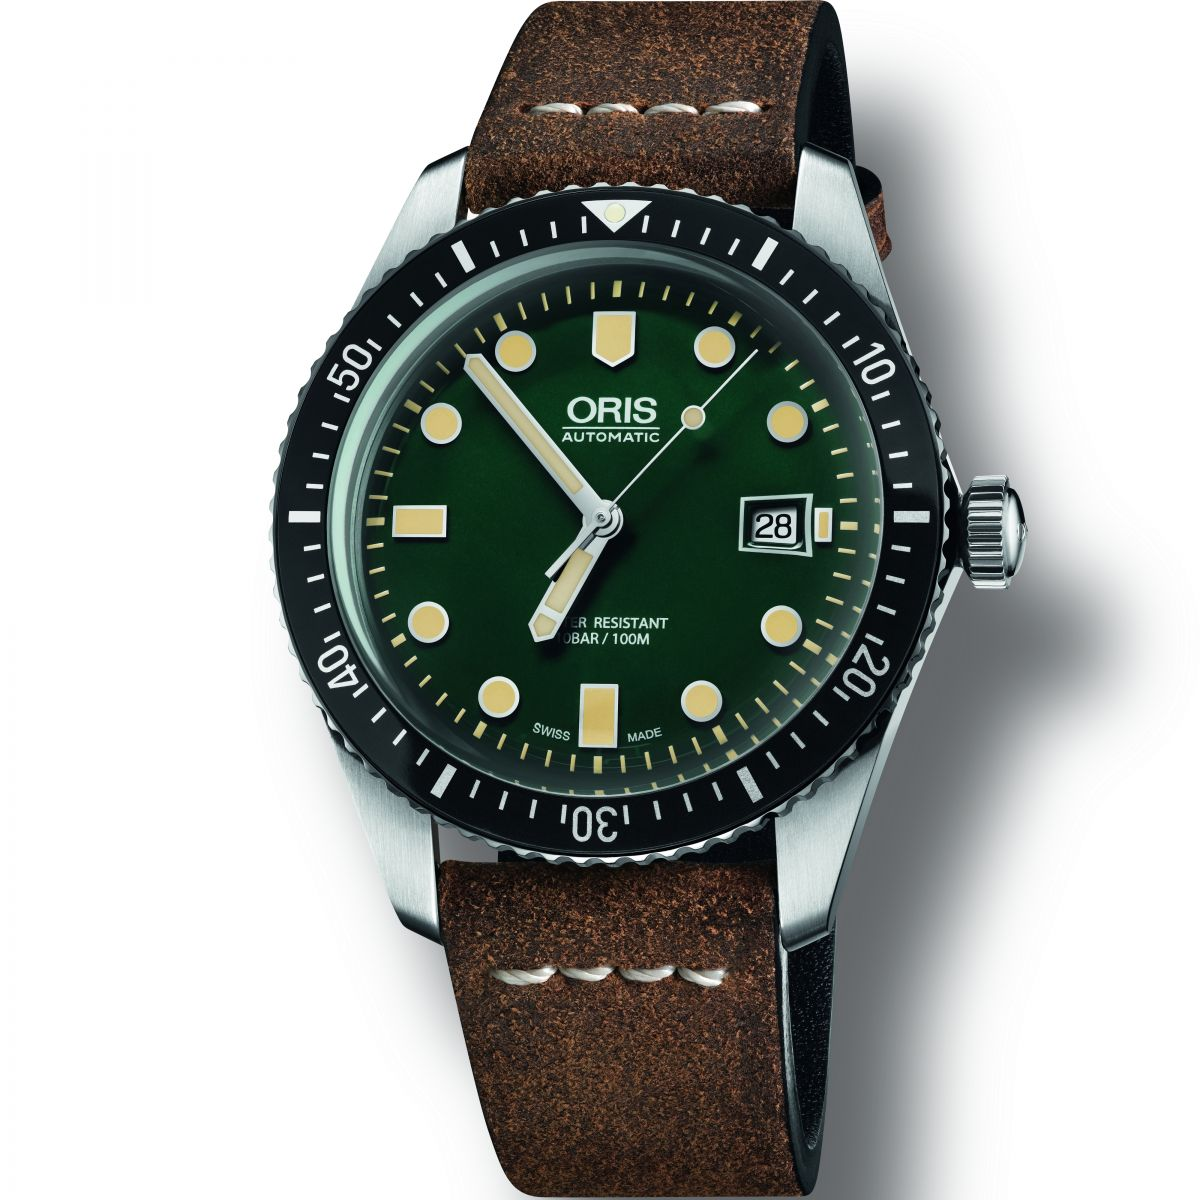 oris mechanical tevami watches swiss carlos purely